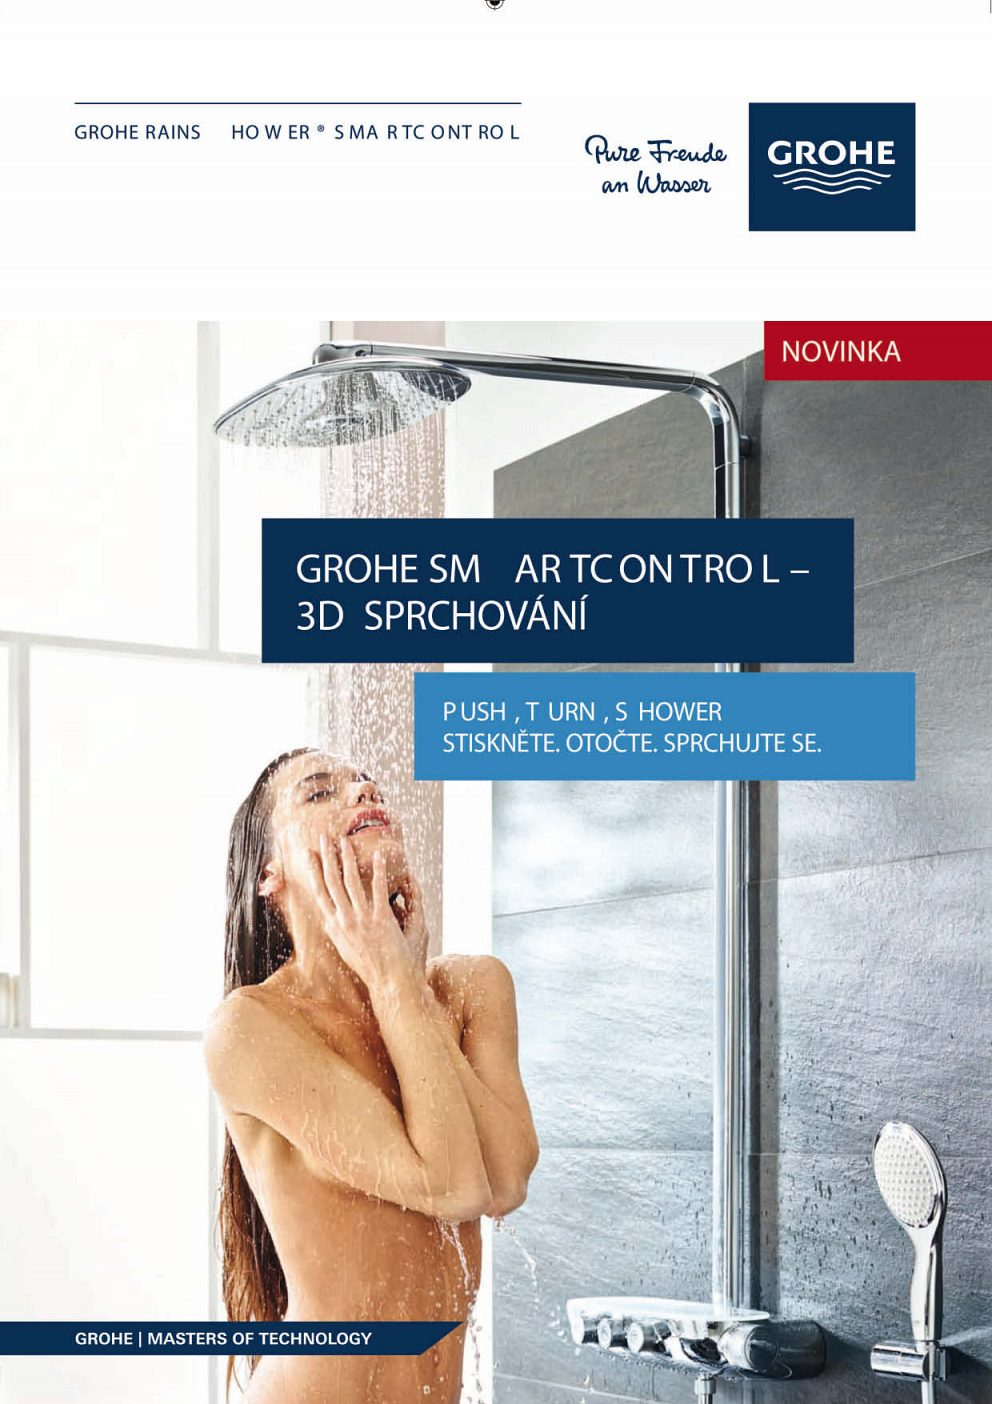 Grohe - Smart Control